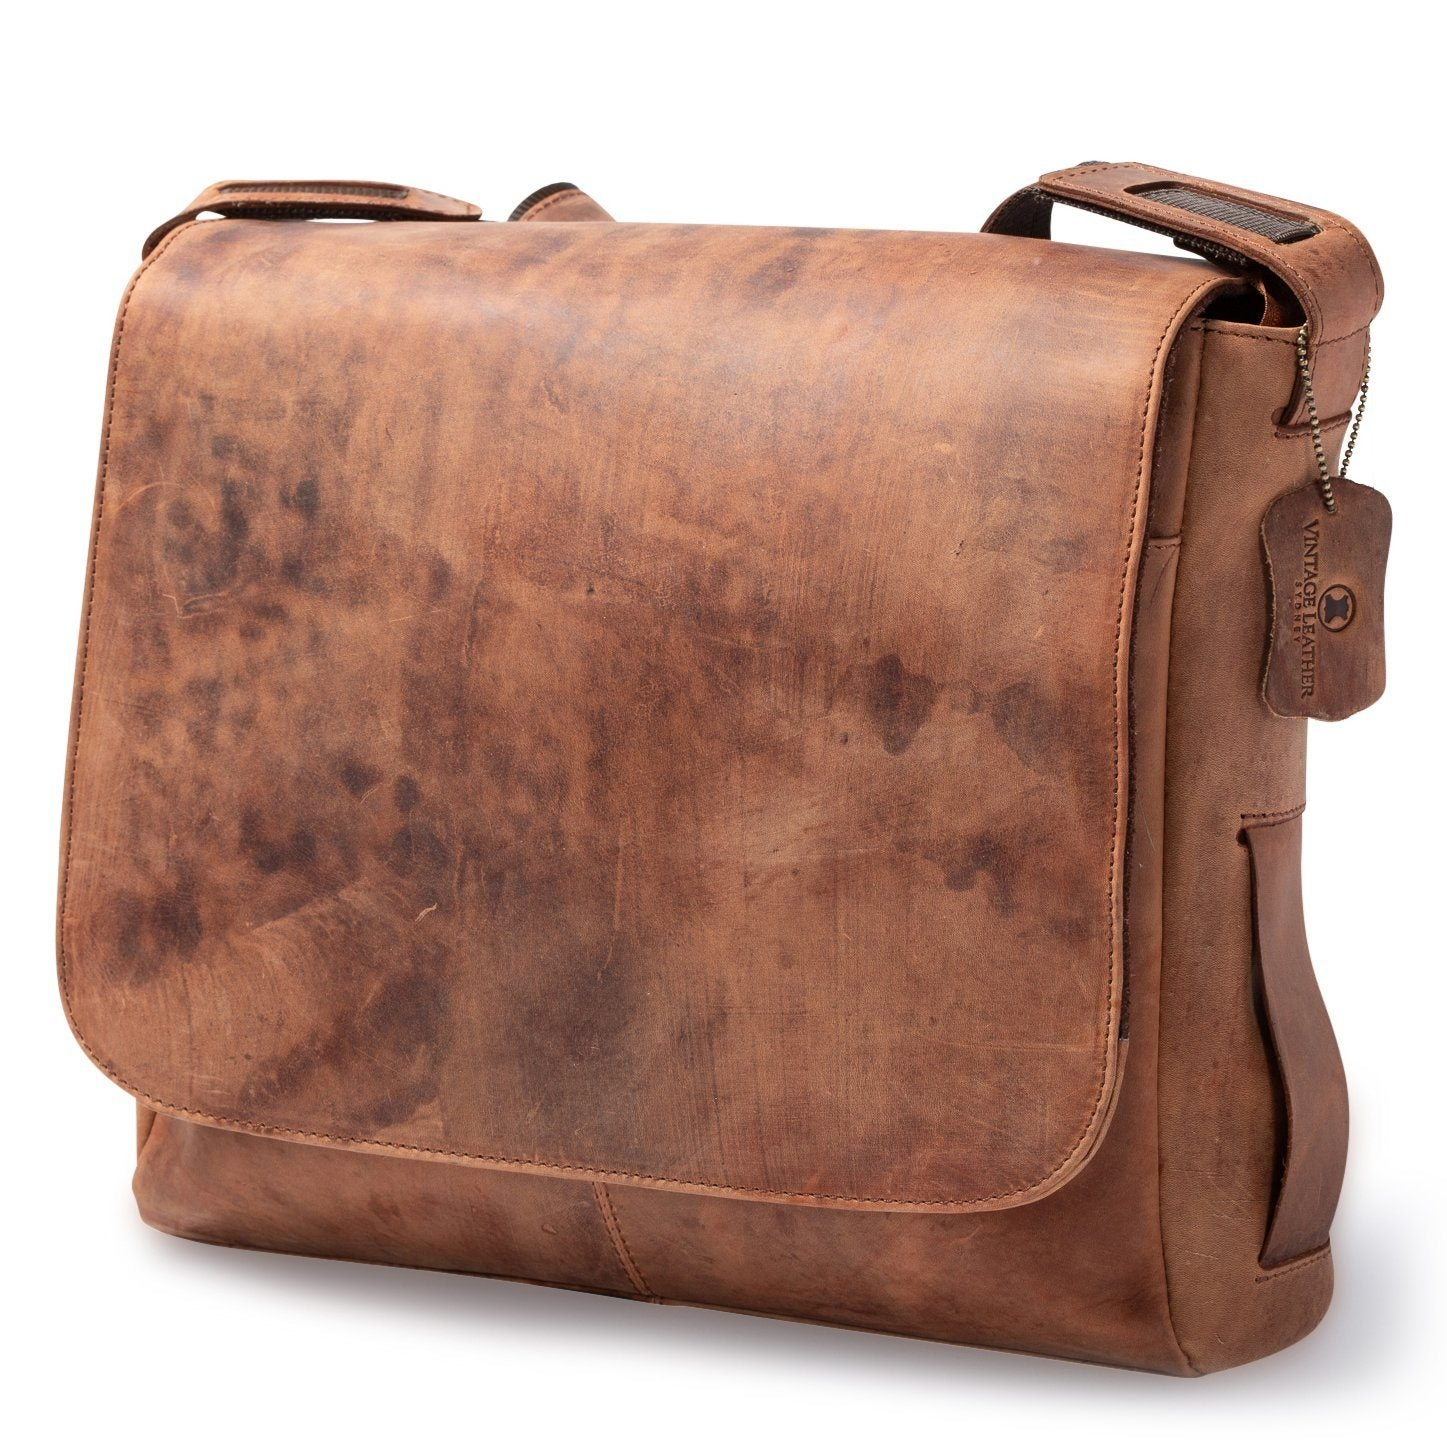 mens leather satchel bag